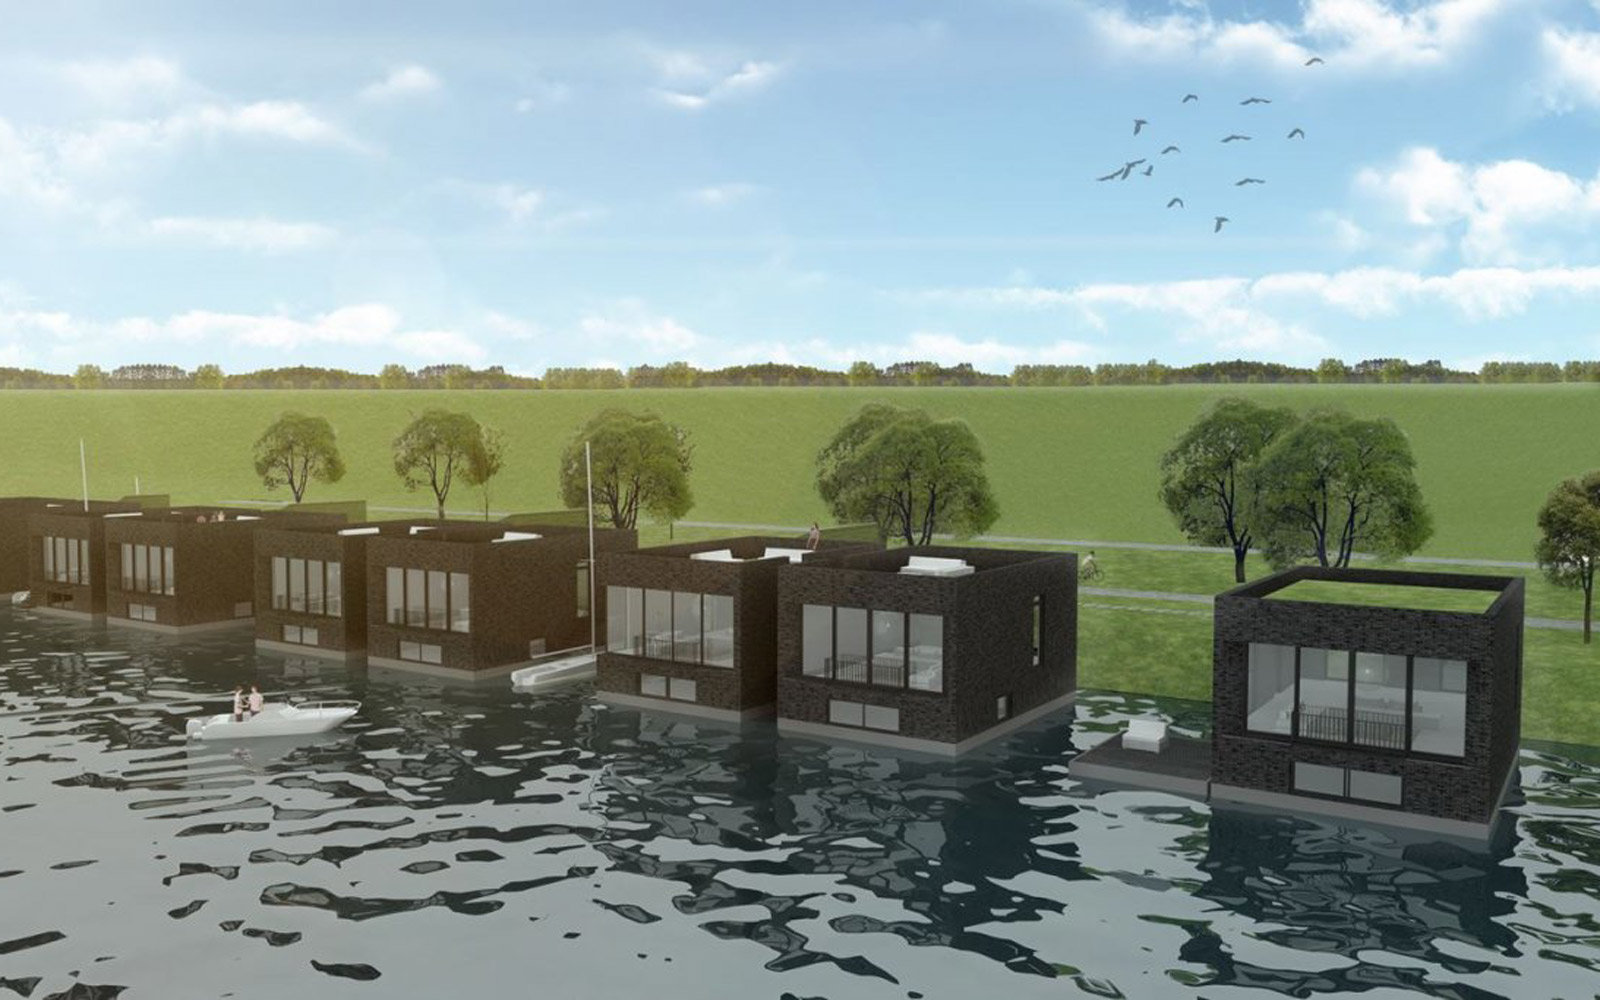 Waterstudio: Group of Floating Homes